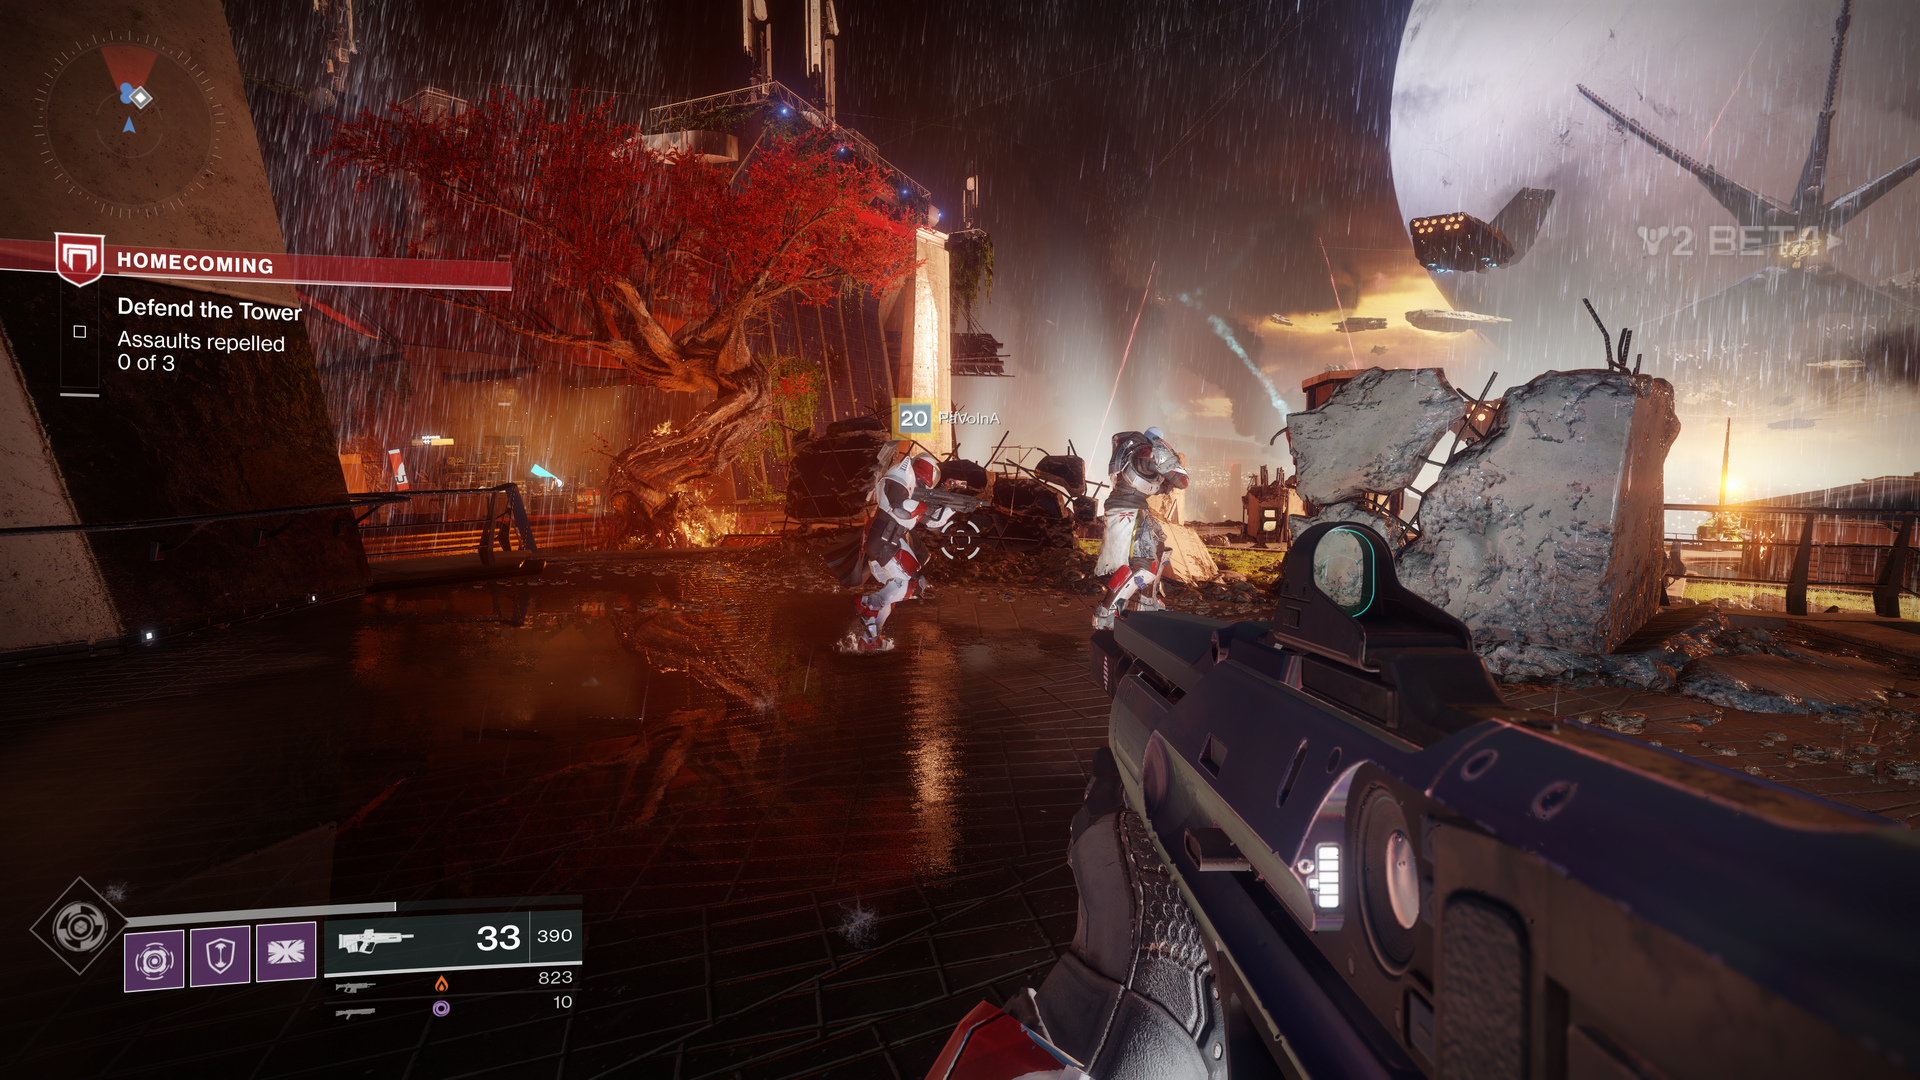 Destiny 2 looks absolutely incredible on the PC